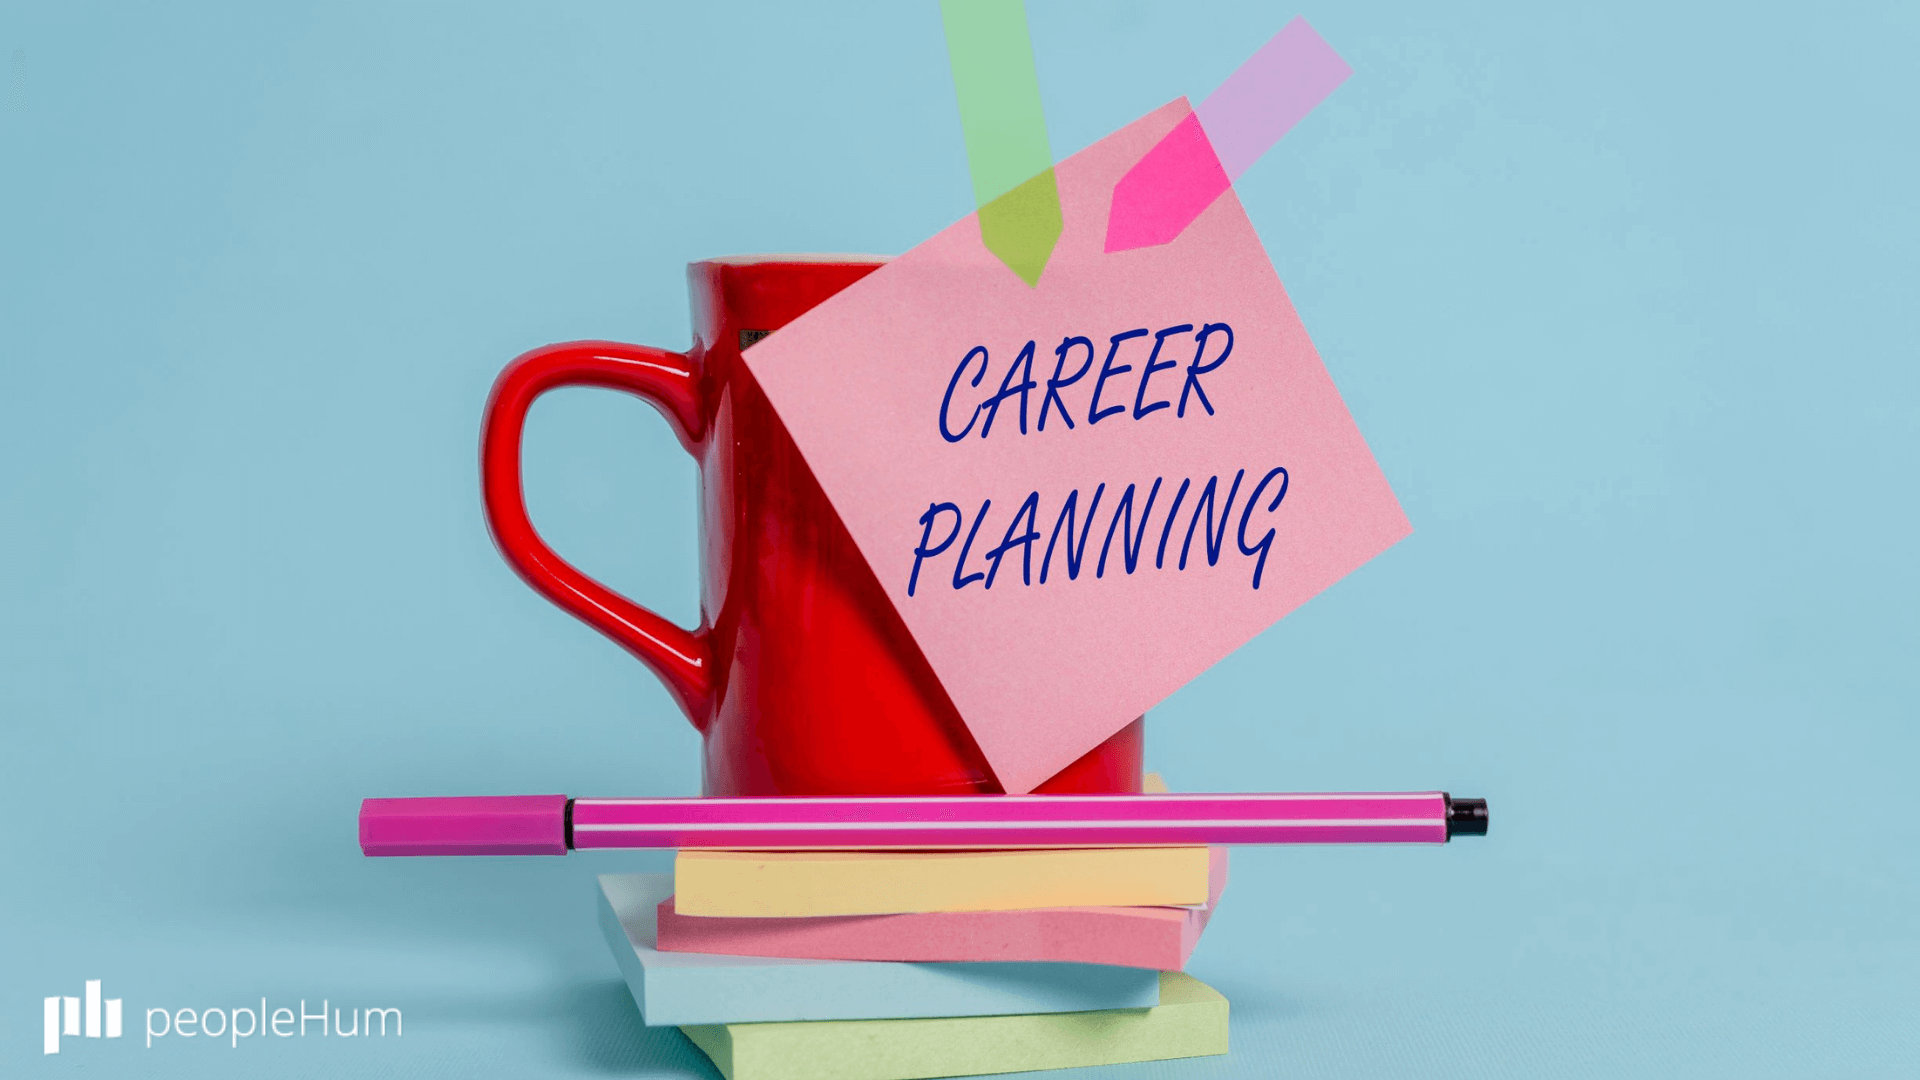 10 ways to plan your career for growth